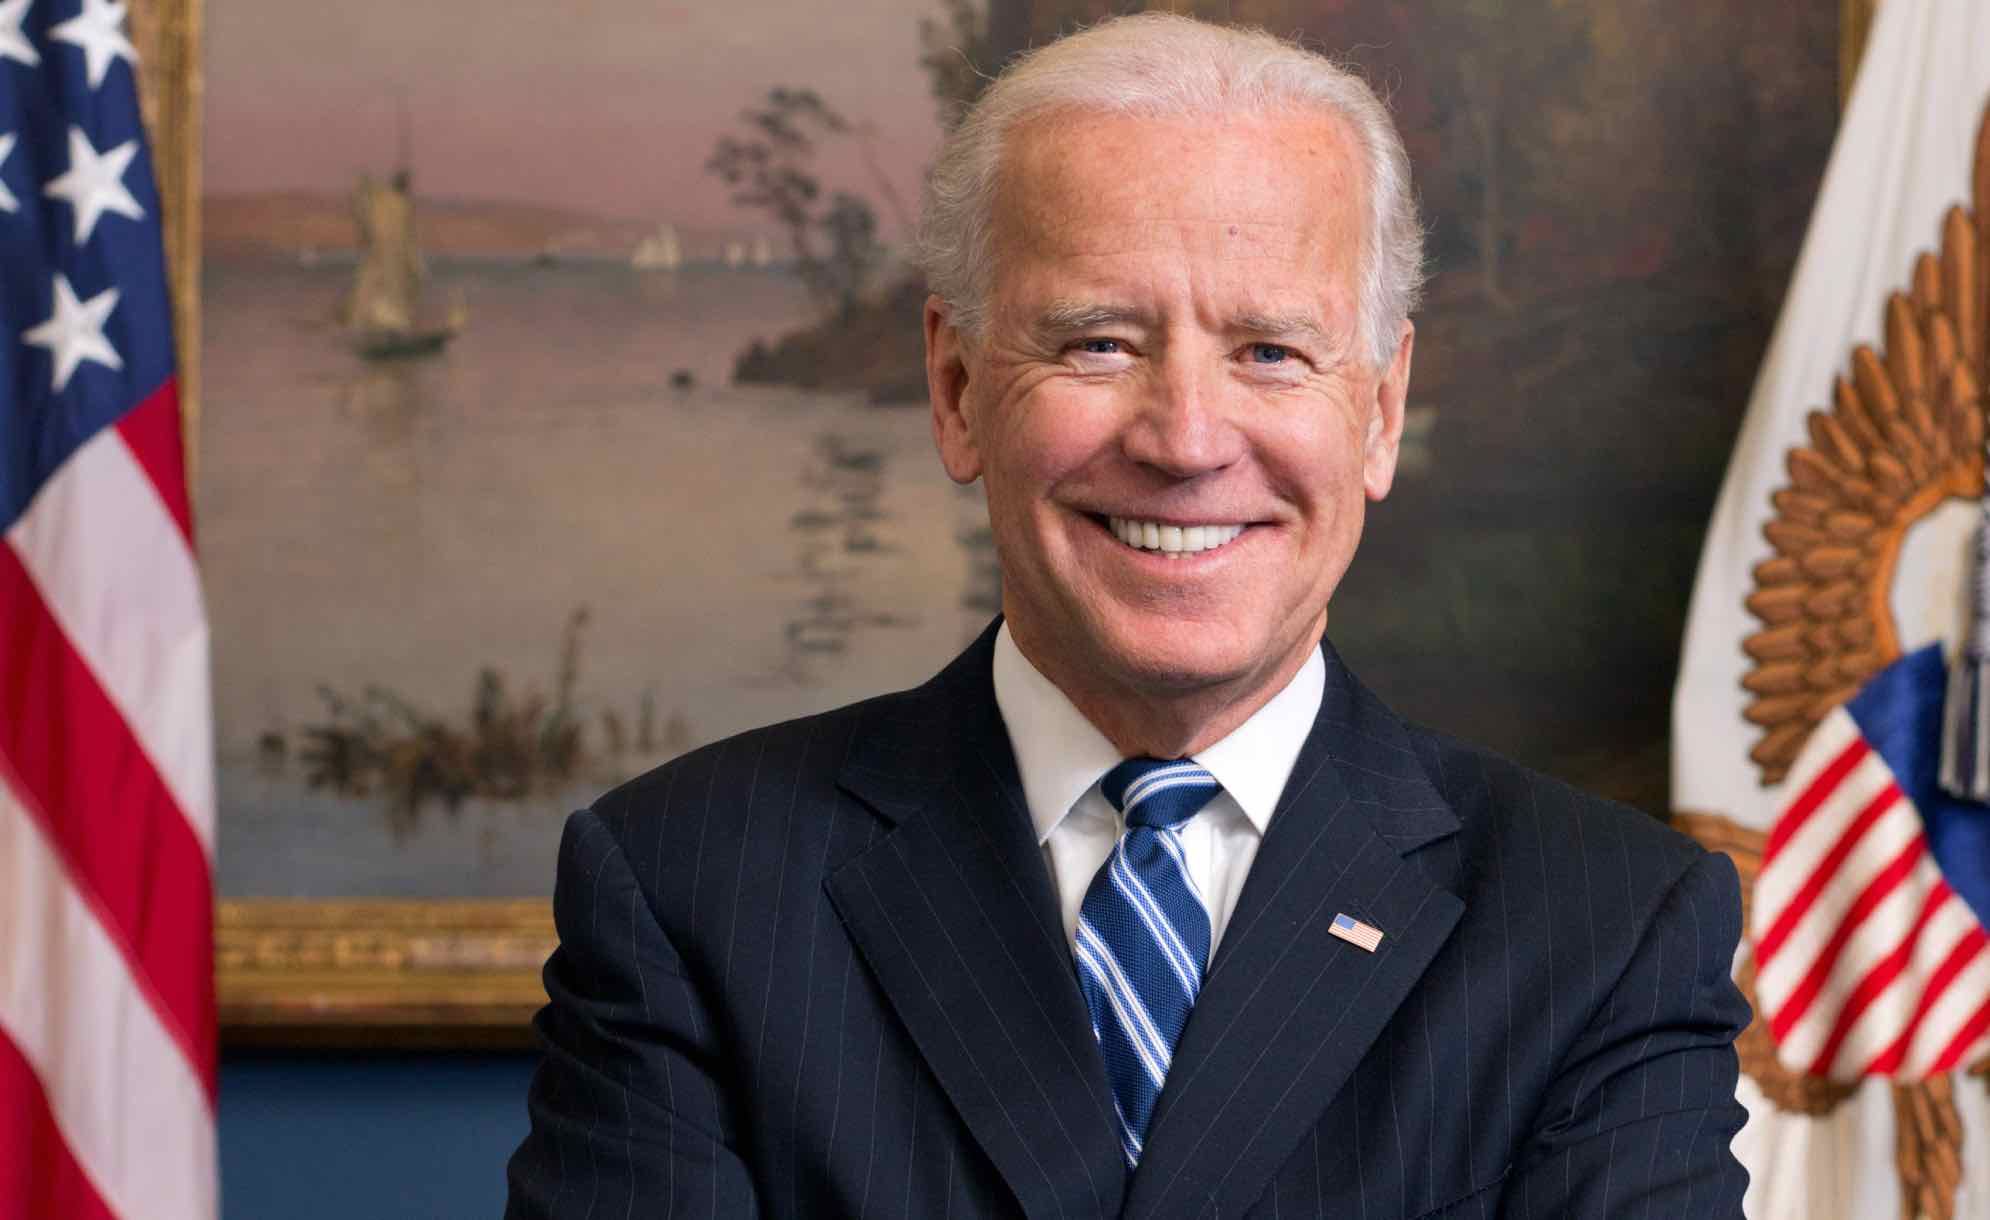 us elections 2020 Joe biden